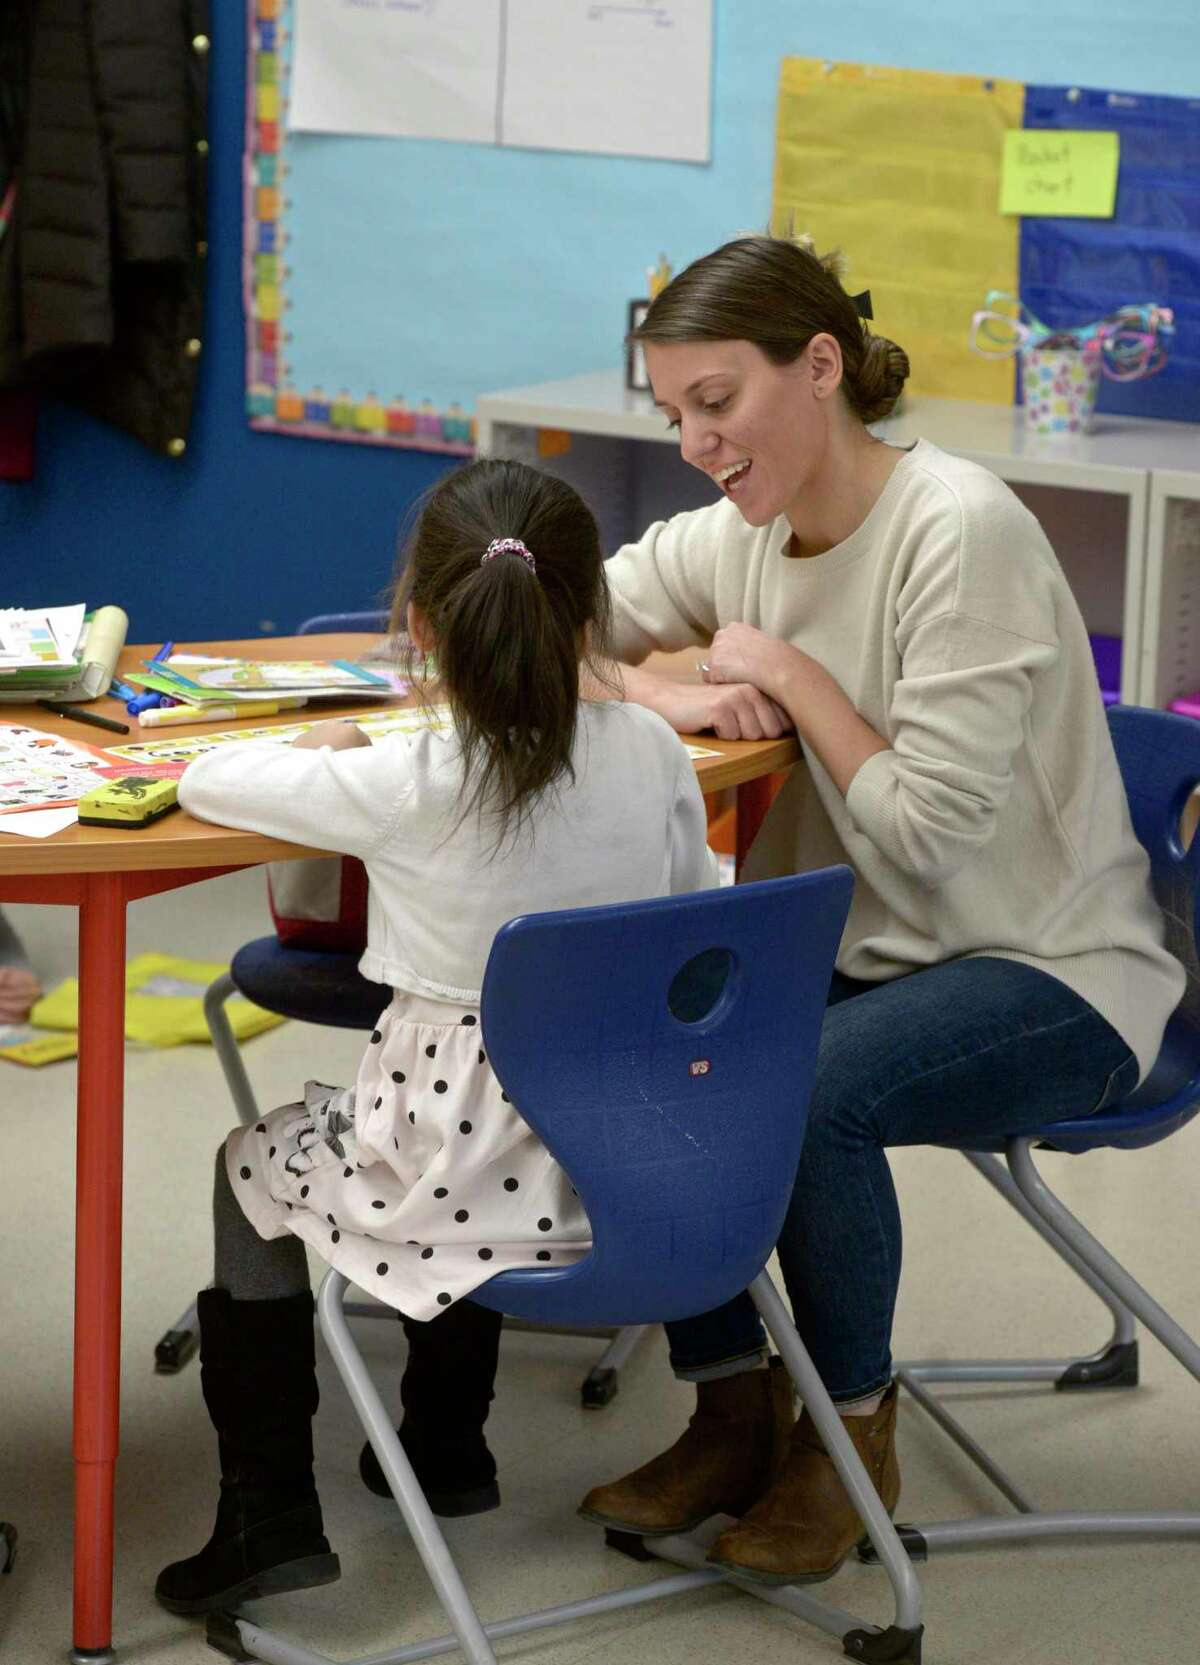 First Grade teacher Diana Heitor works with a student at Ellsworth Avenue Elementary school using ELL strategies in the classroom. Friday, February 28, 2020, in Danbury, Conn.